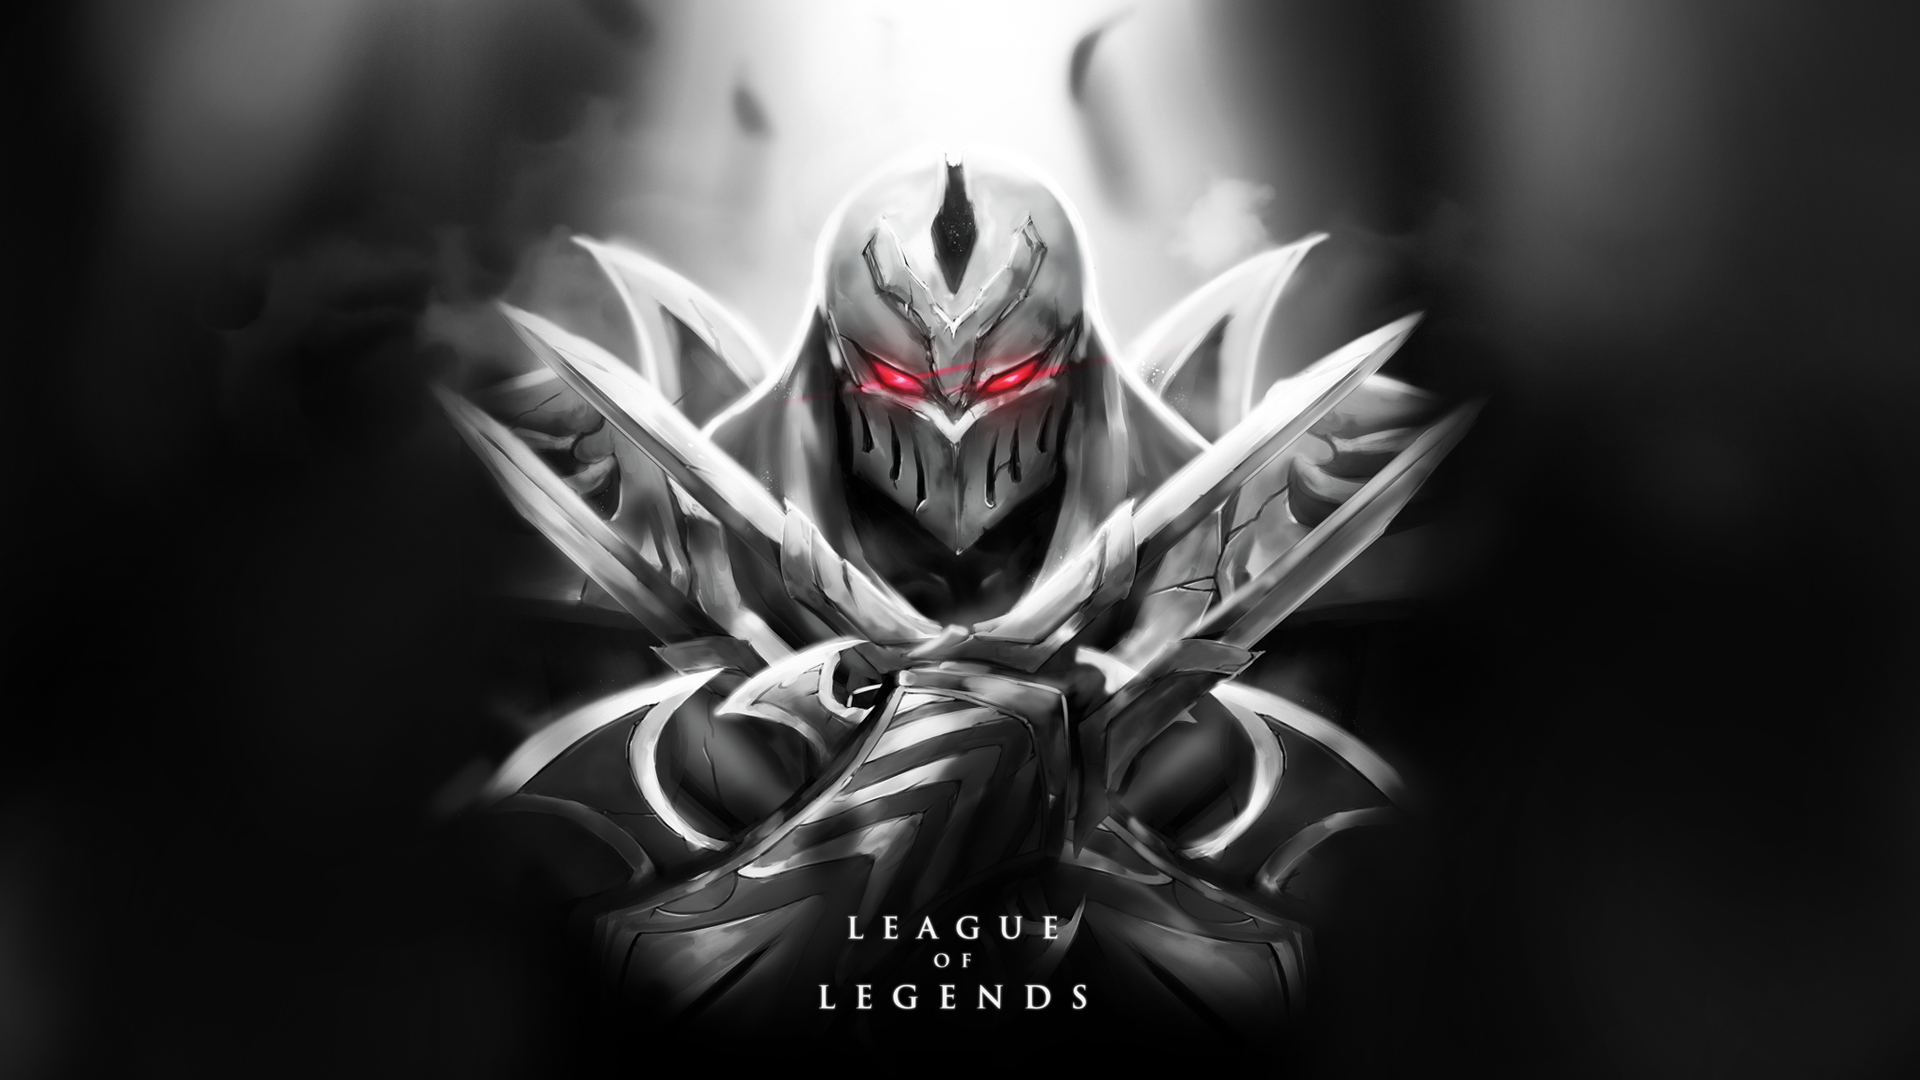 League of Legends wallpaper 109